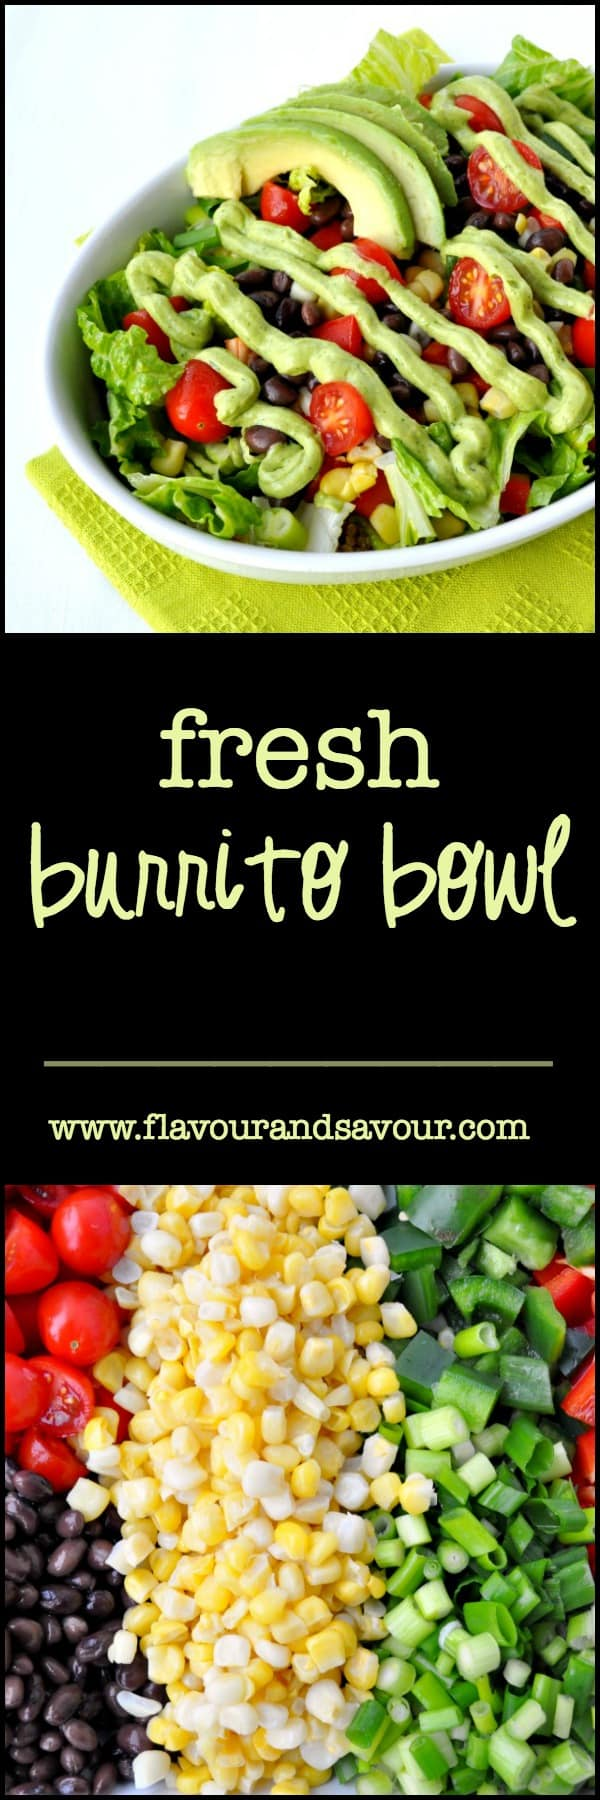 Fresh Burrito Bowl. All the flavours of the Southwest! Quinoa, black beans and fresh crispy vegetables, drizzled in avocado cream. We like this for an easy weeknight meal. Leftovers for lunch are even better!